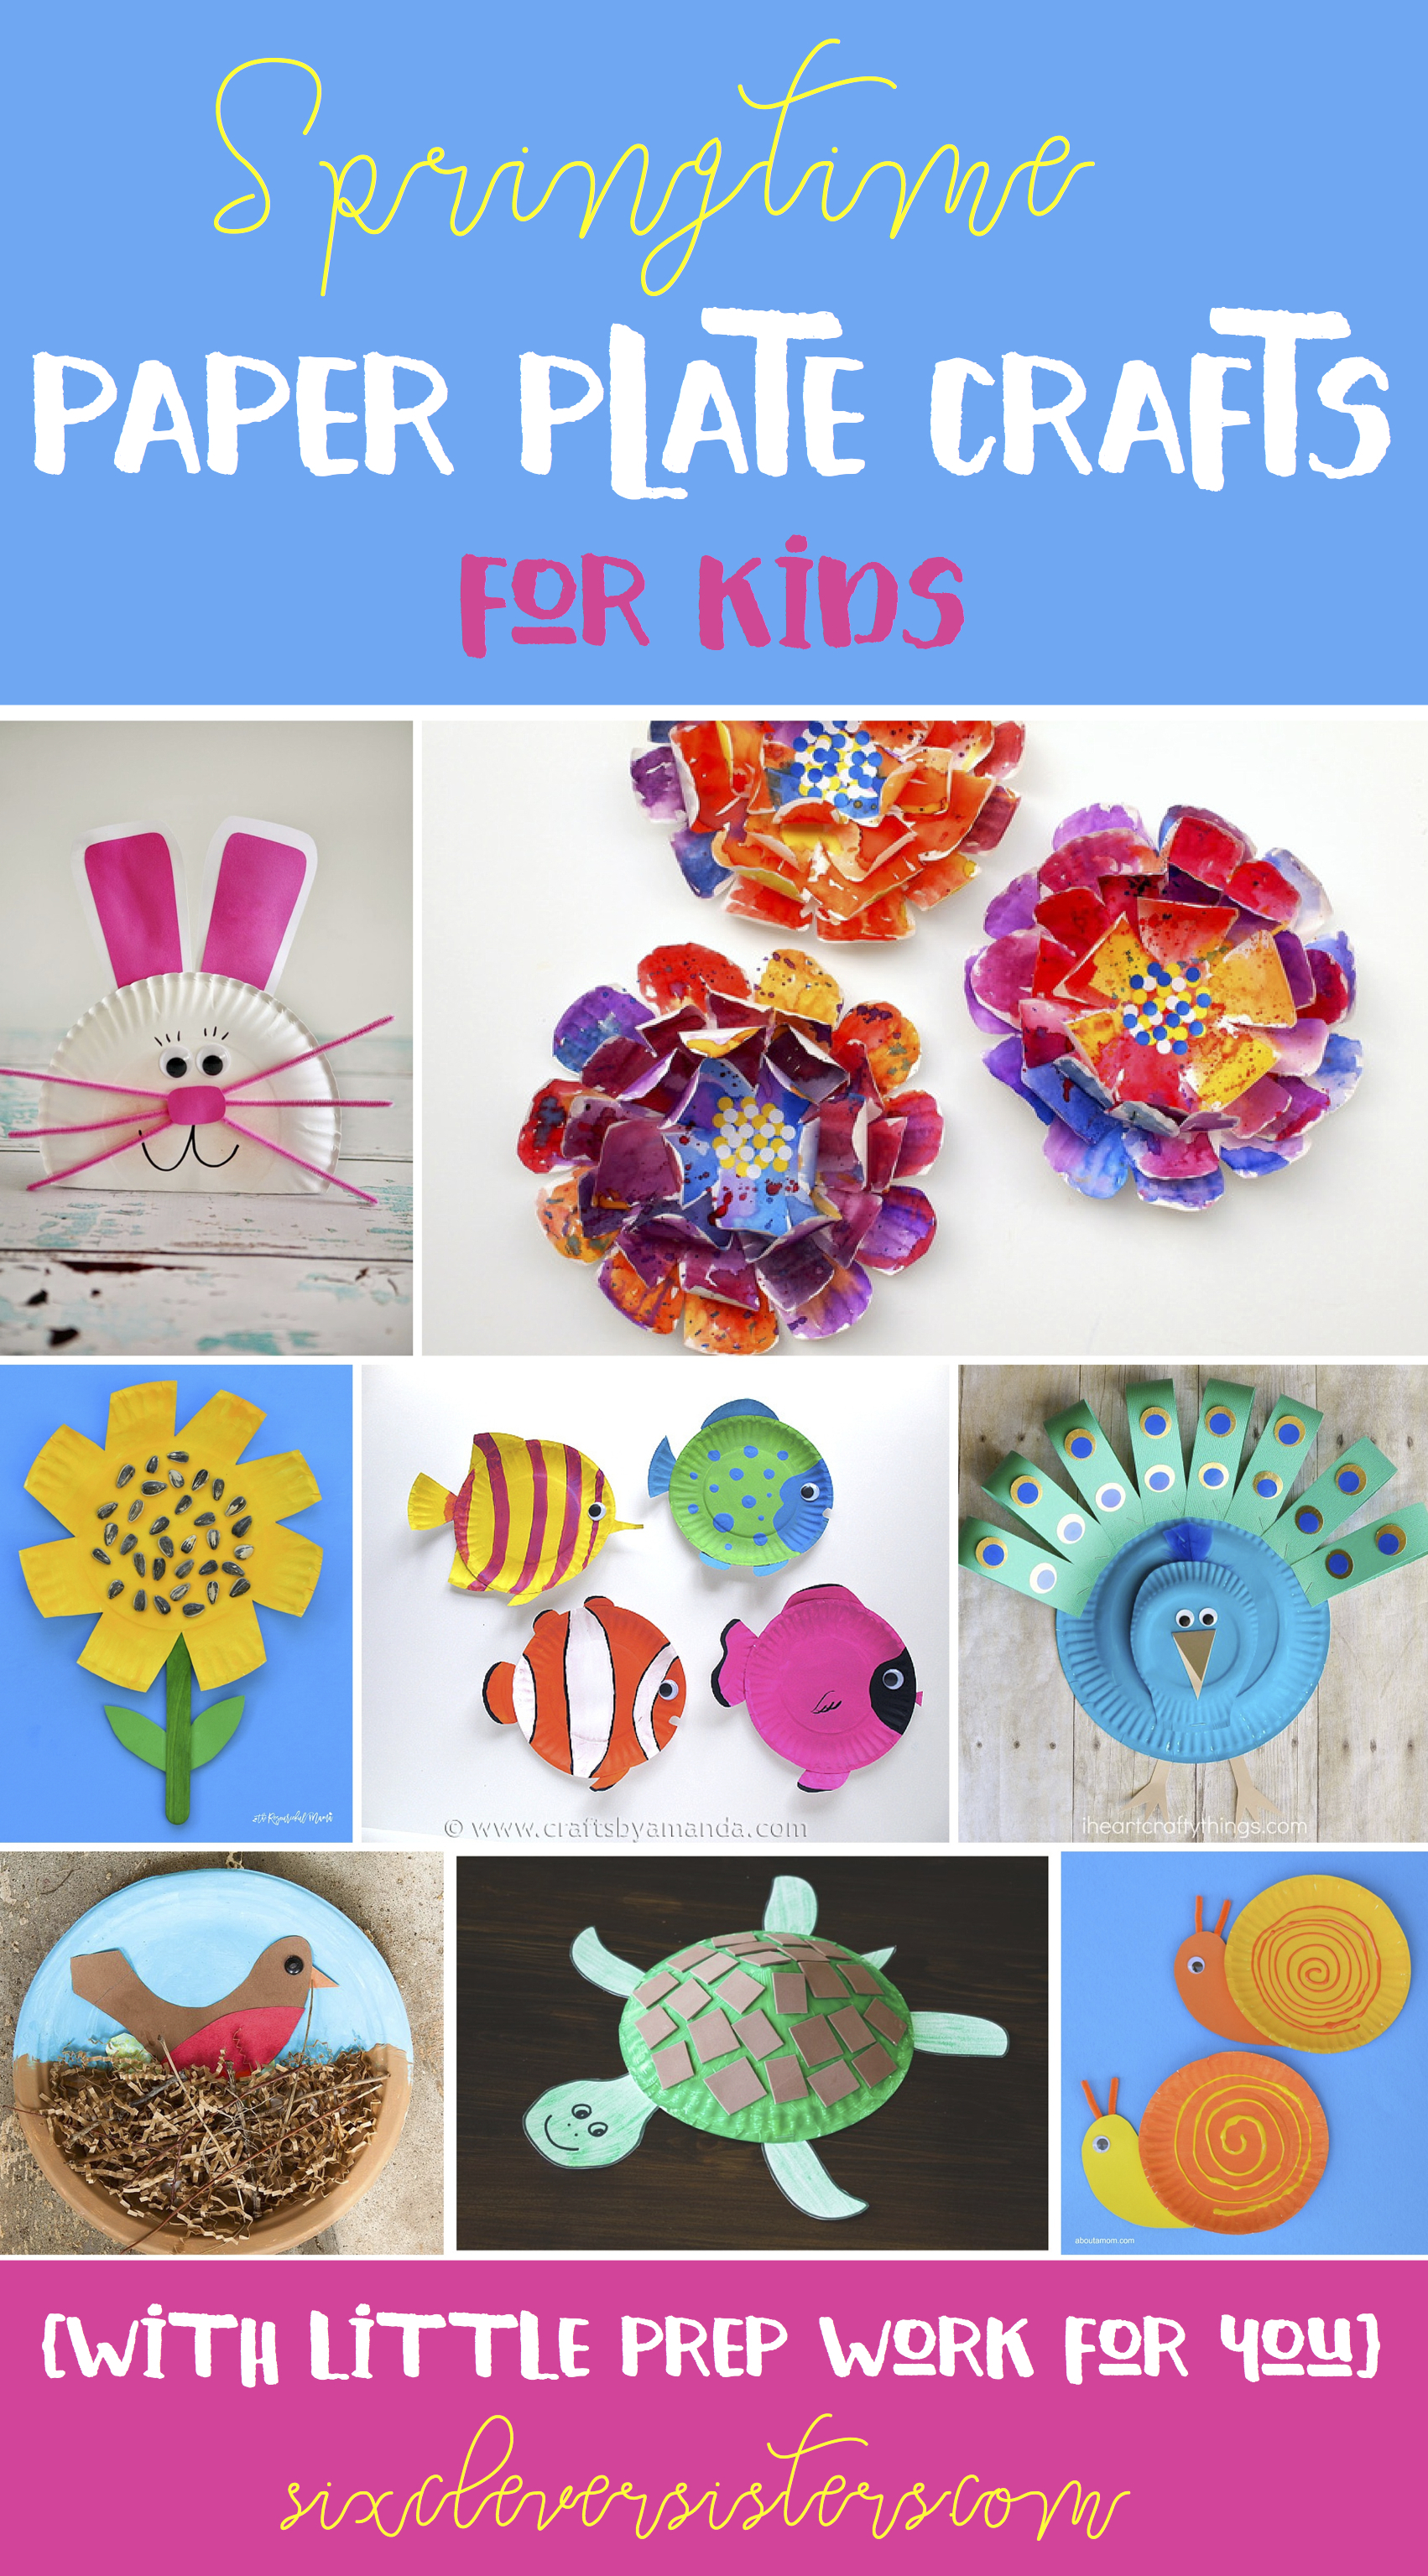 Paper Plate Crafts   Crafts for Kids   Easy Craft Ideas for Kids   Crafts Made  sc 1 st  Six Clever Sisters & Spring Time Paper Plate Crafts for Kids with little prep work for ...